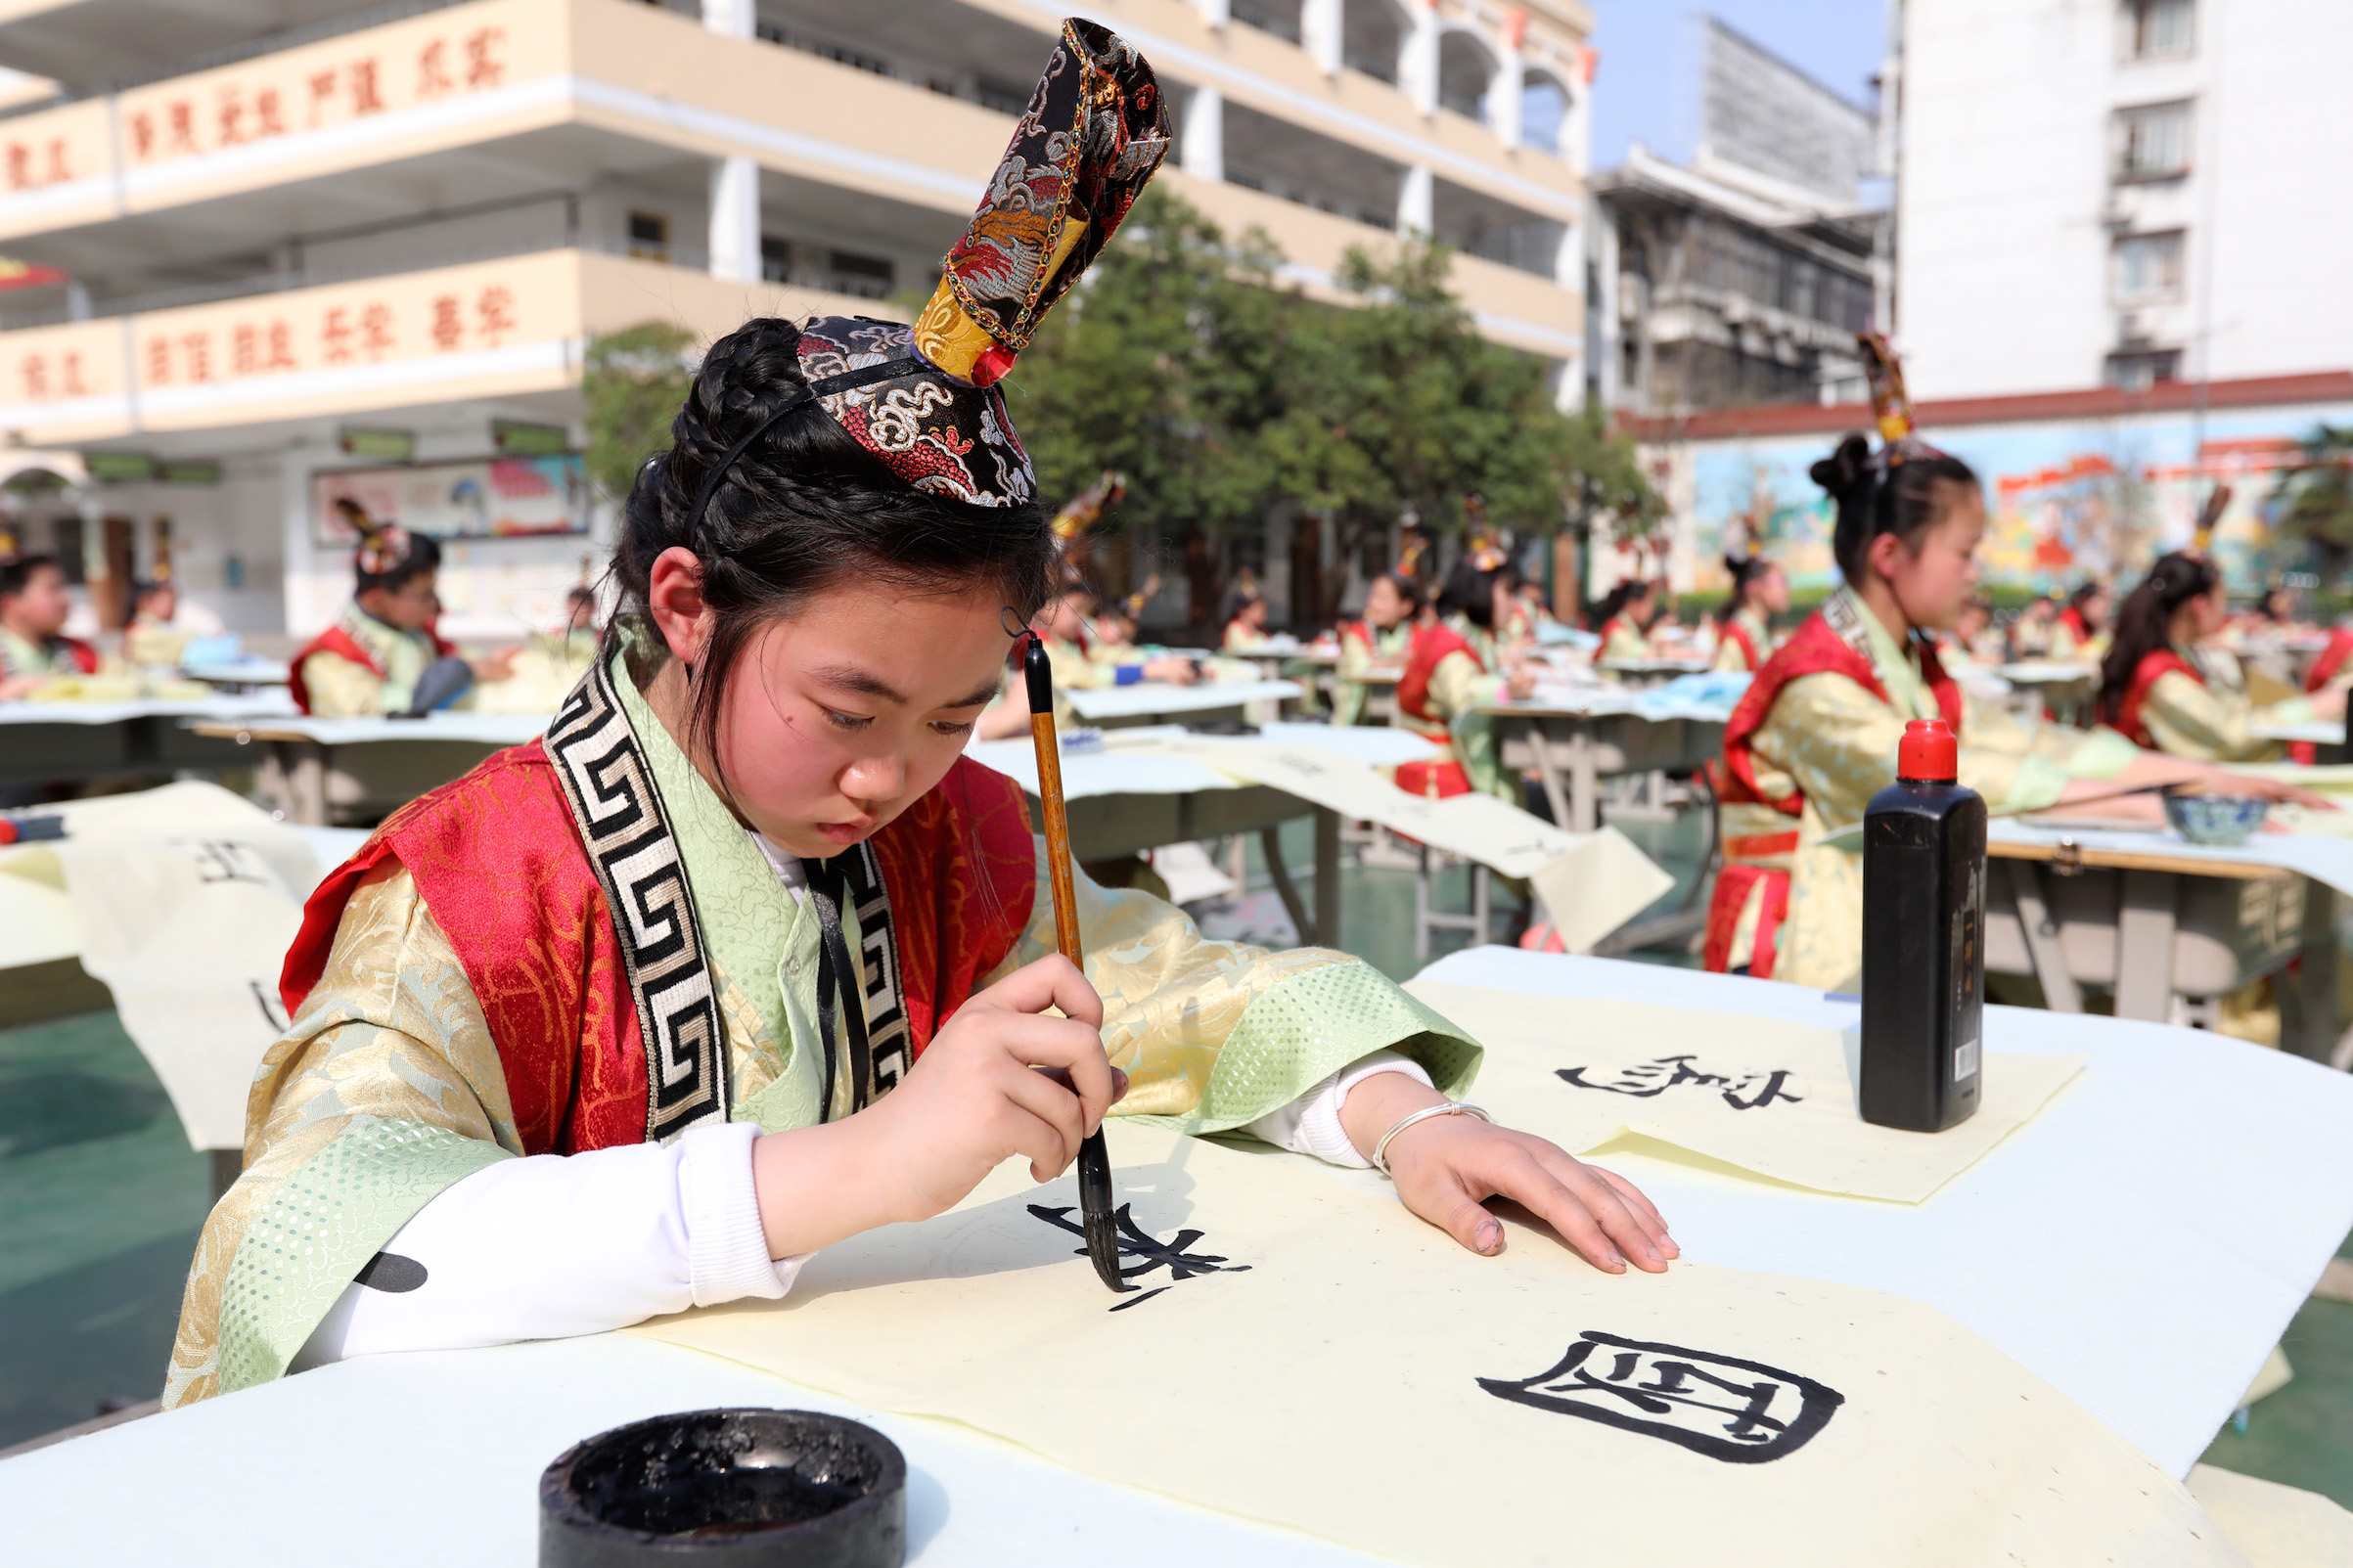 Students of Huaibei City Gucheng Road Primary School attend a calligraphy competition on March 30, 2018, in Huaibei, Anhui Province of China.